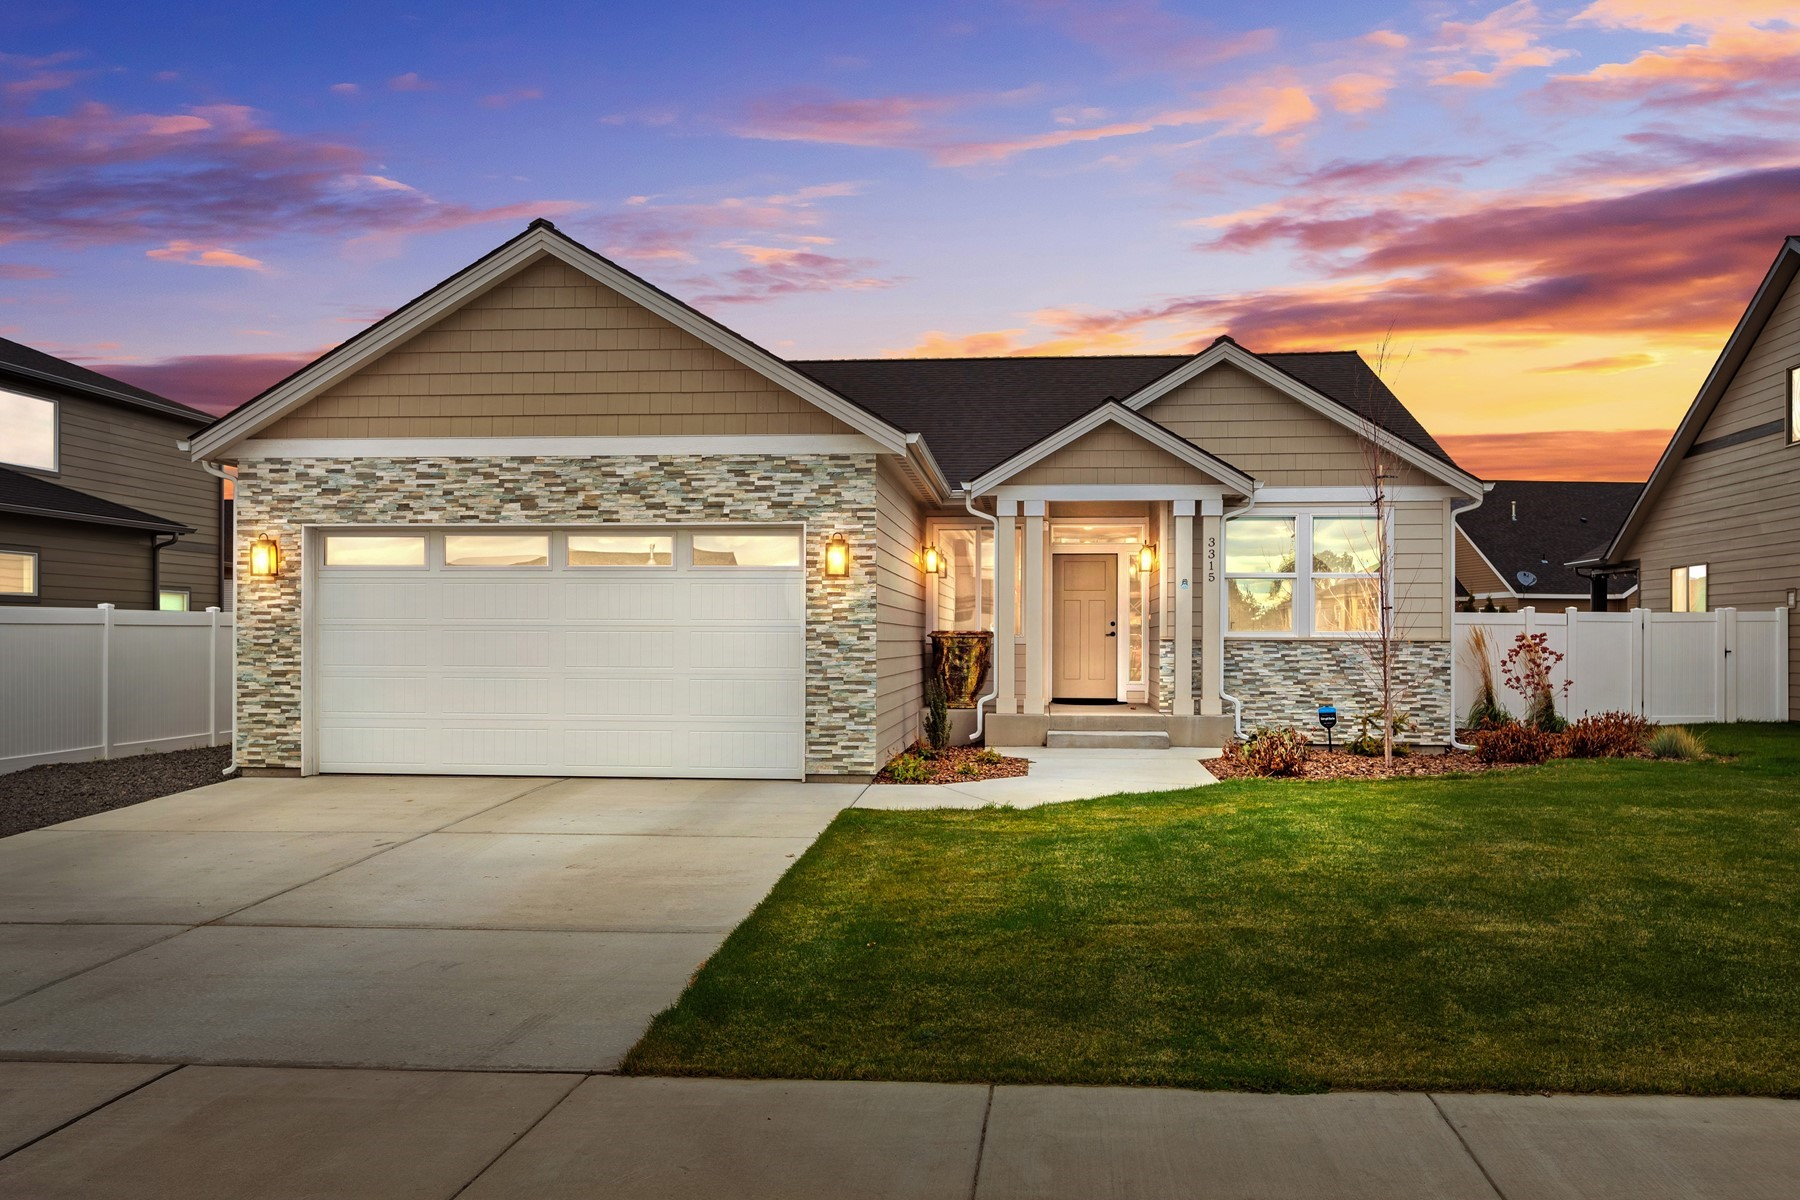 Single Family Homes for Sale at Single Level Hayden Beauty 3315 W Giovanni Ln Hayden, Idaho 83835 United States